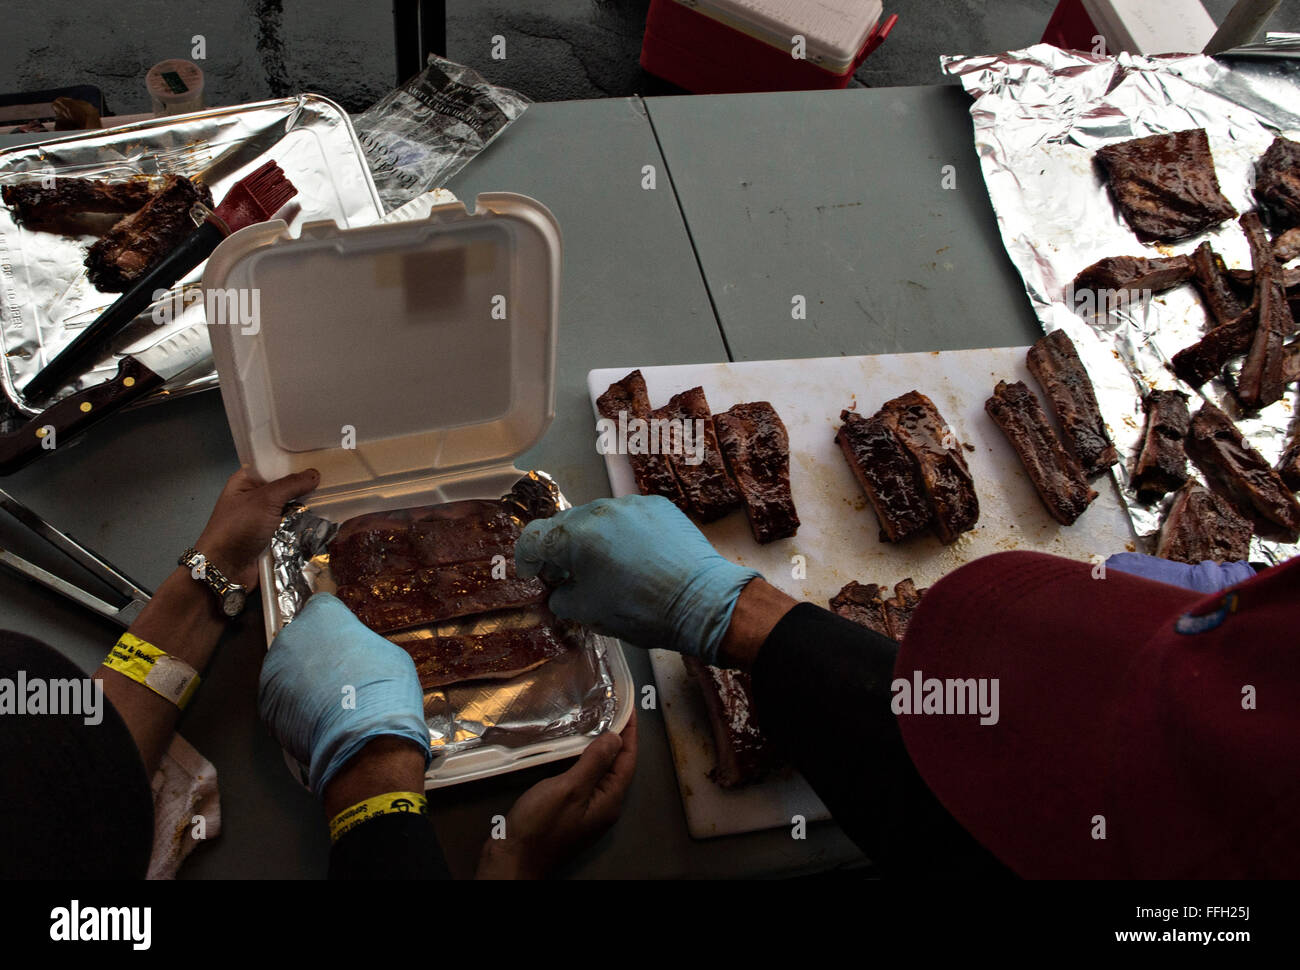 When competing in the barbecue rib category, Tech. Sgt. Todd Houghton will cook no less than six racks of ribs to - Stock Image